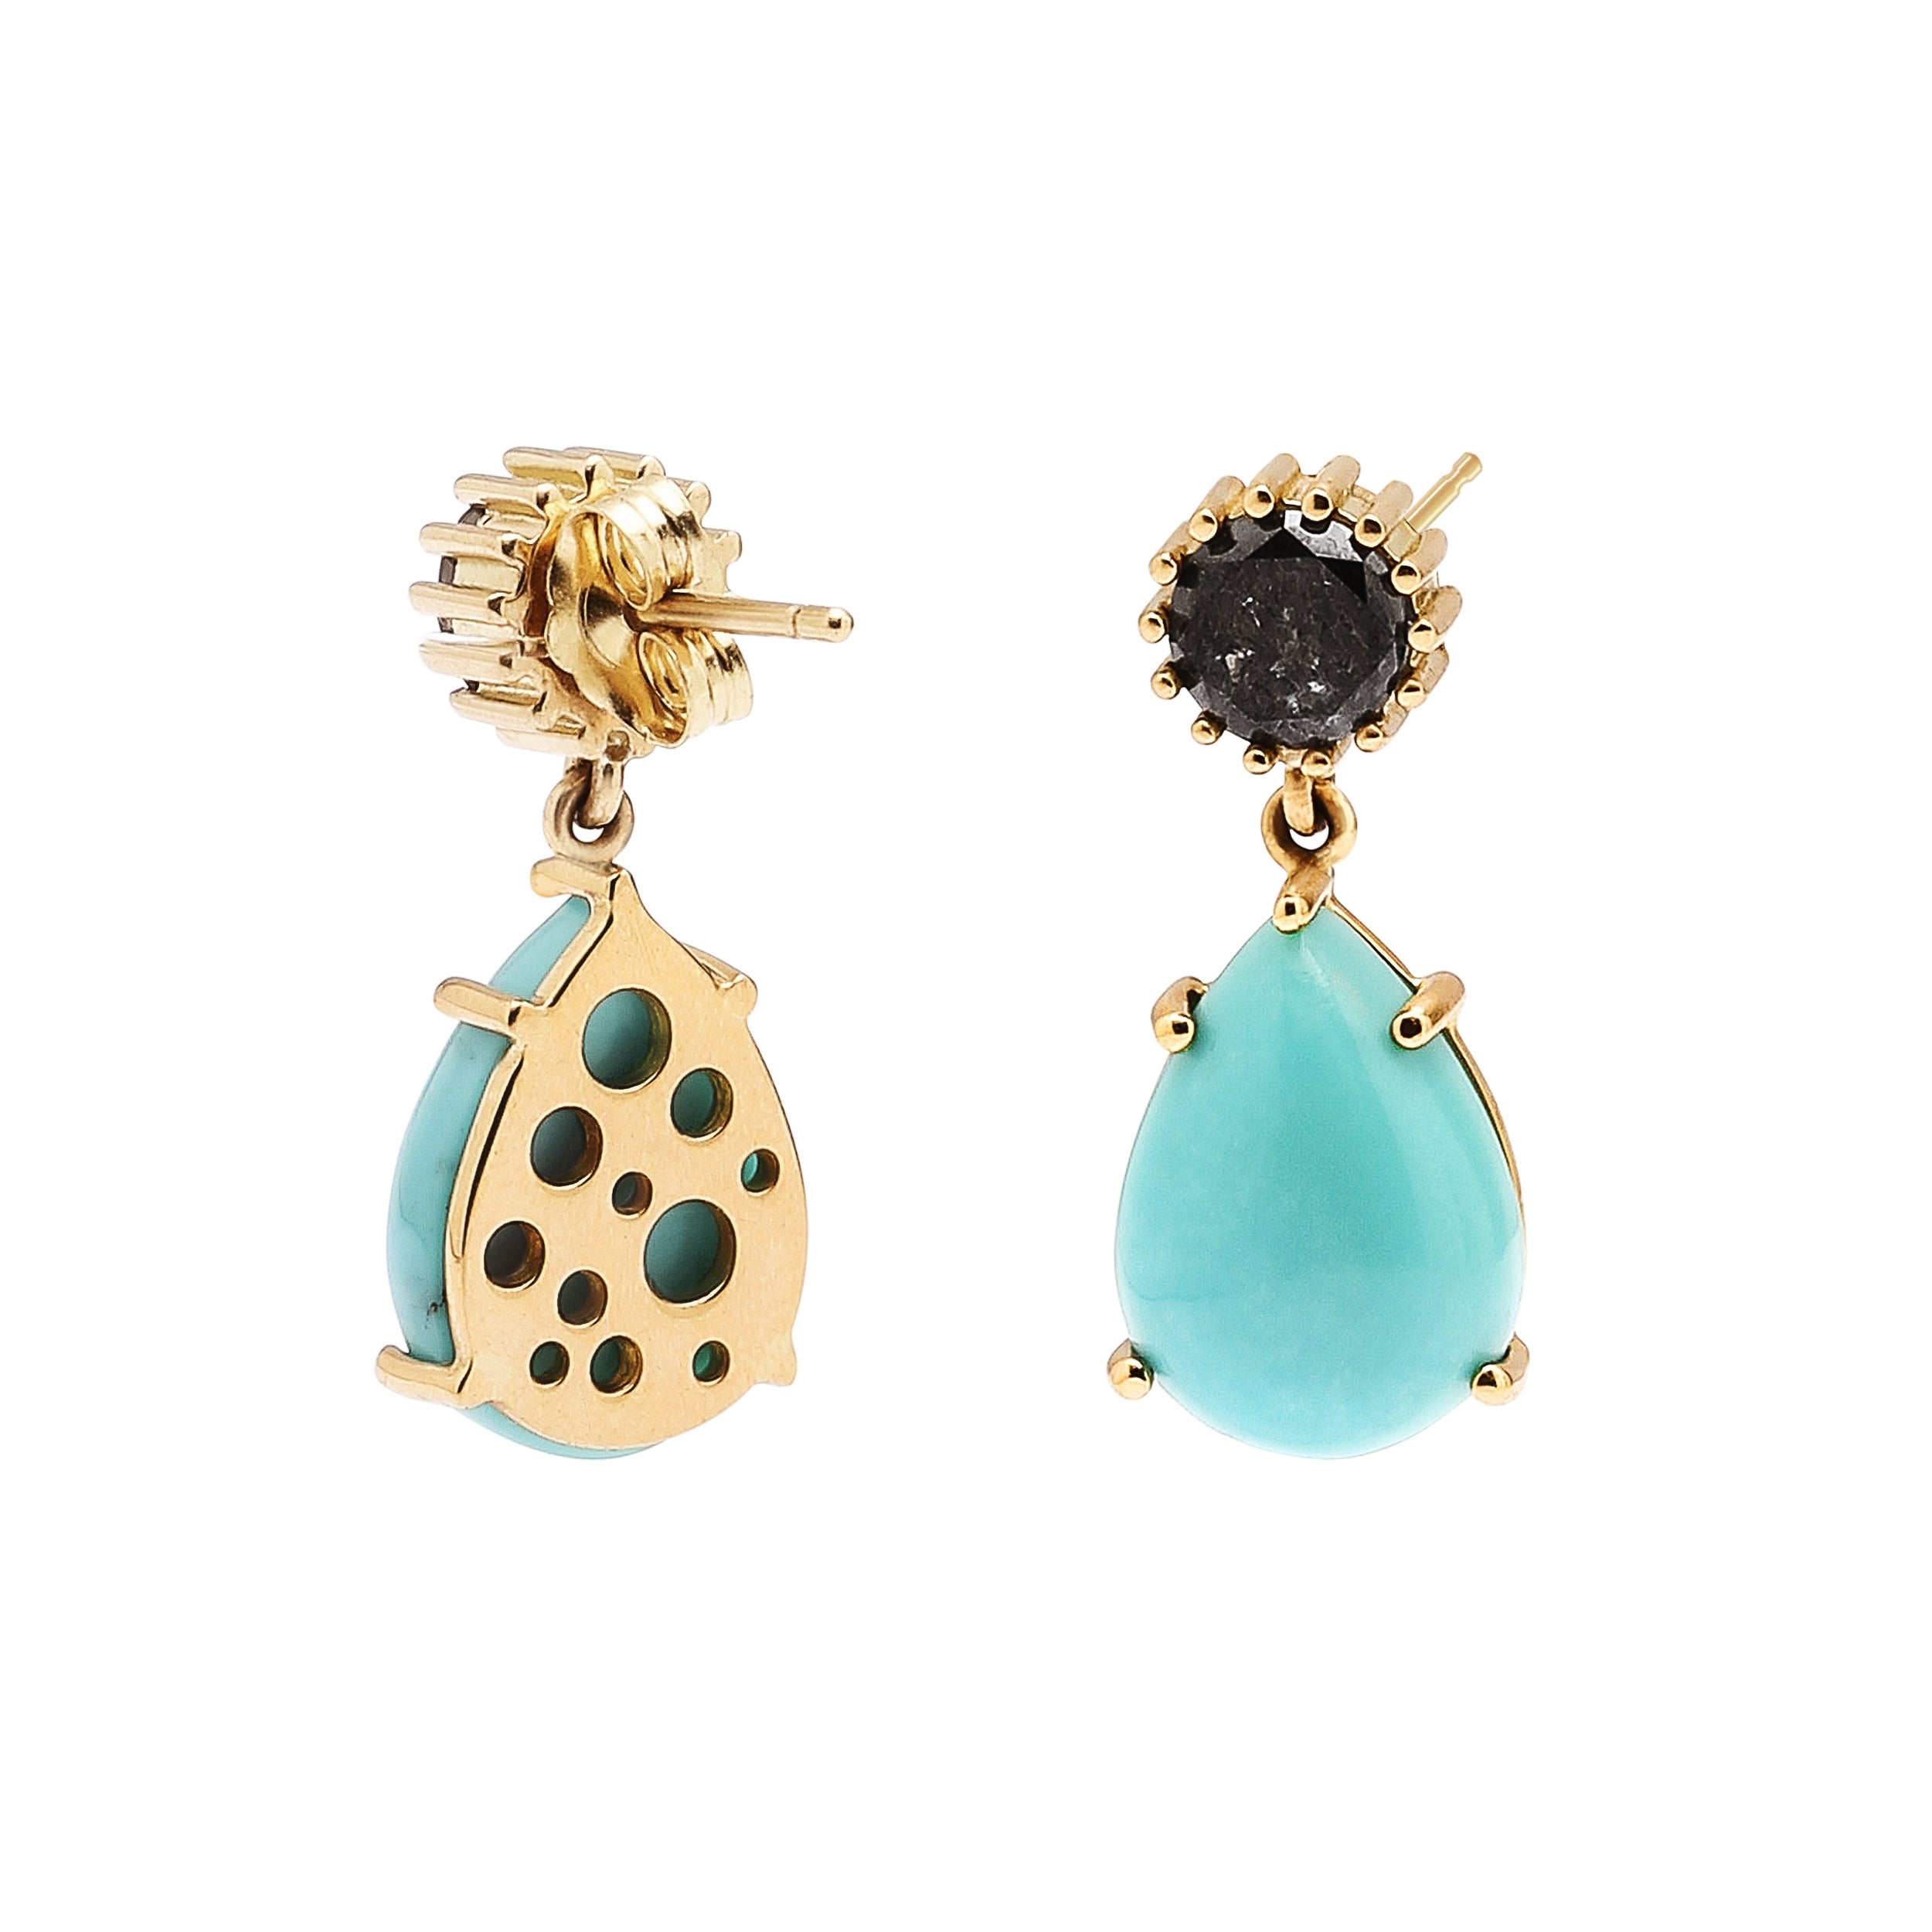 Black Diamond & Pear-Shaped Turquoise Oculus Back Single Drop Earrings